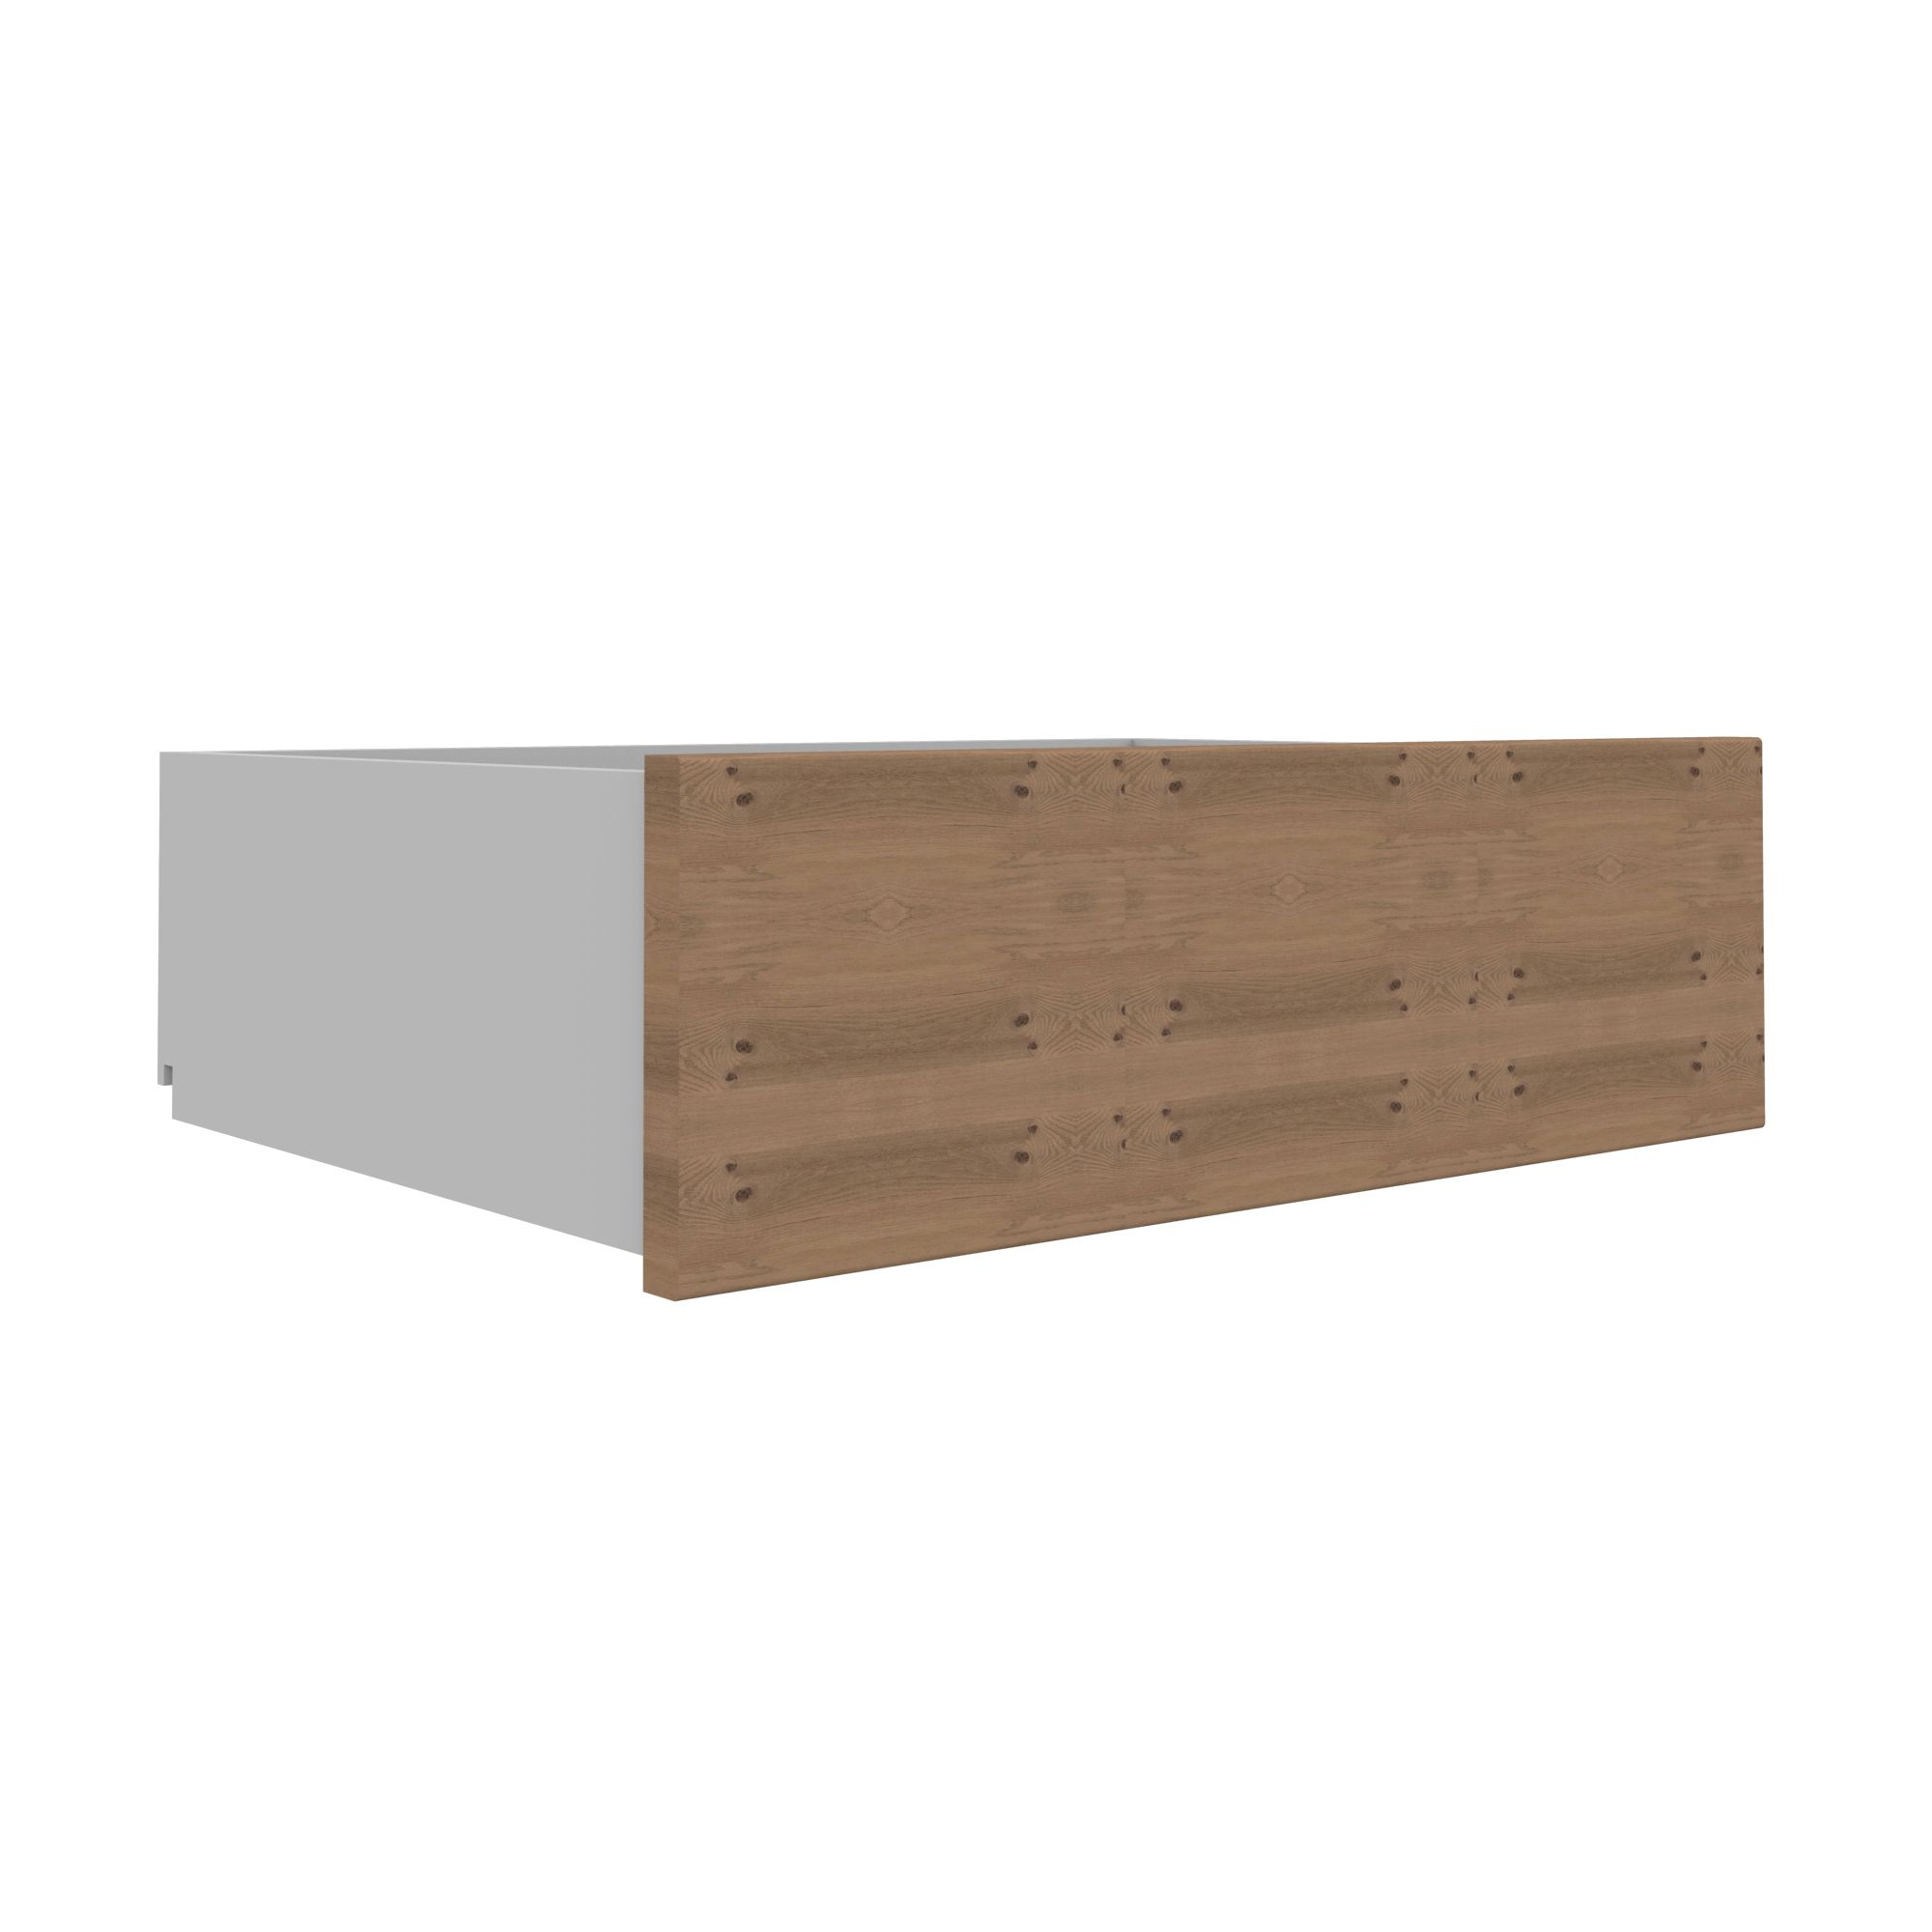 Darwin Modular Oak Effect & Oak Effect Internal Drawer (h)158mm (w)500mm (d)566mm